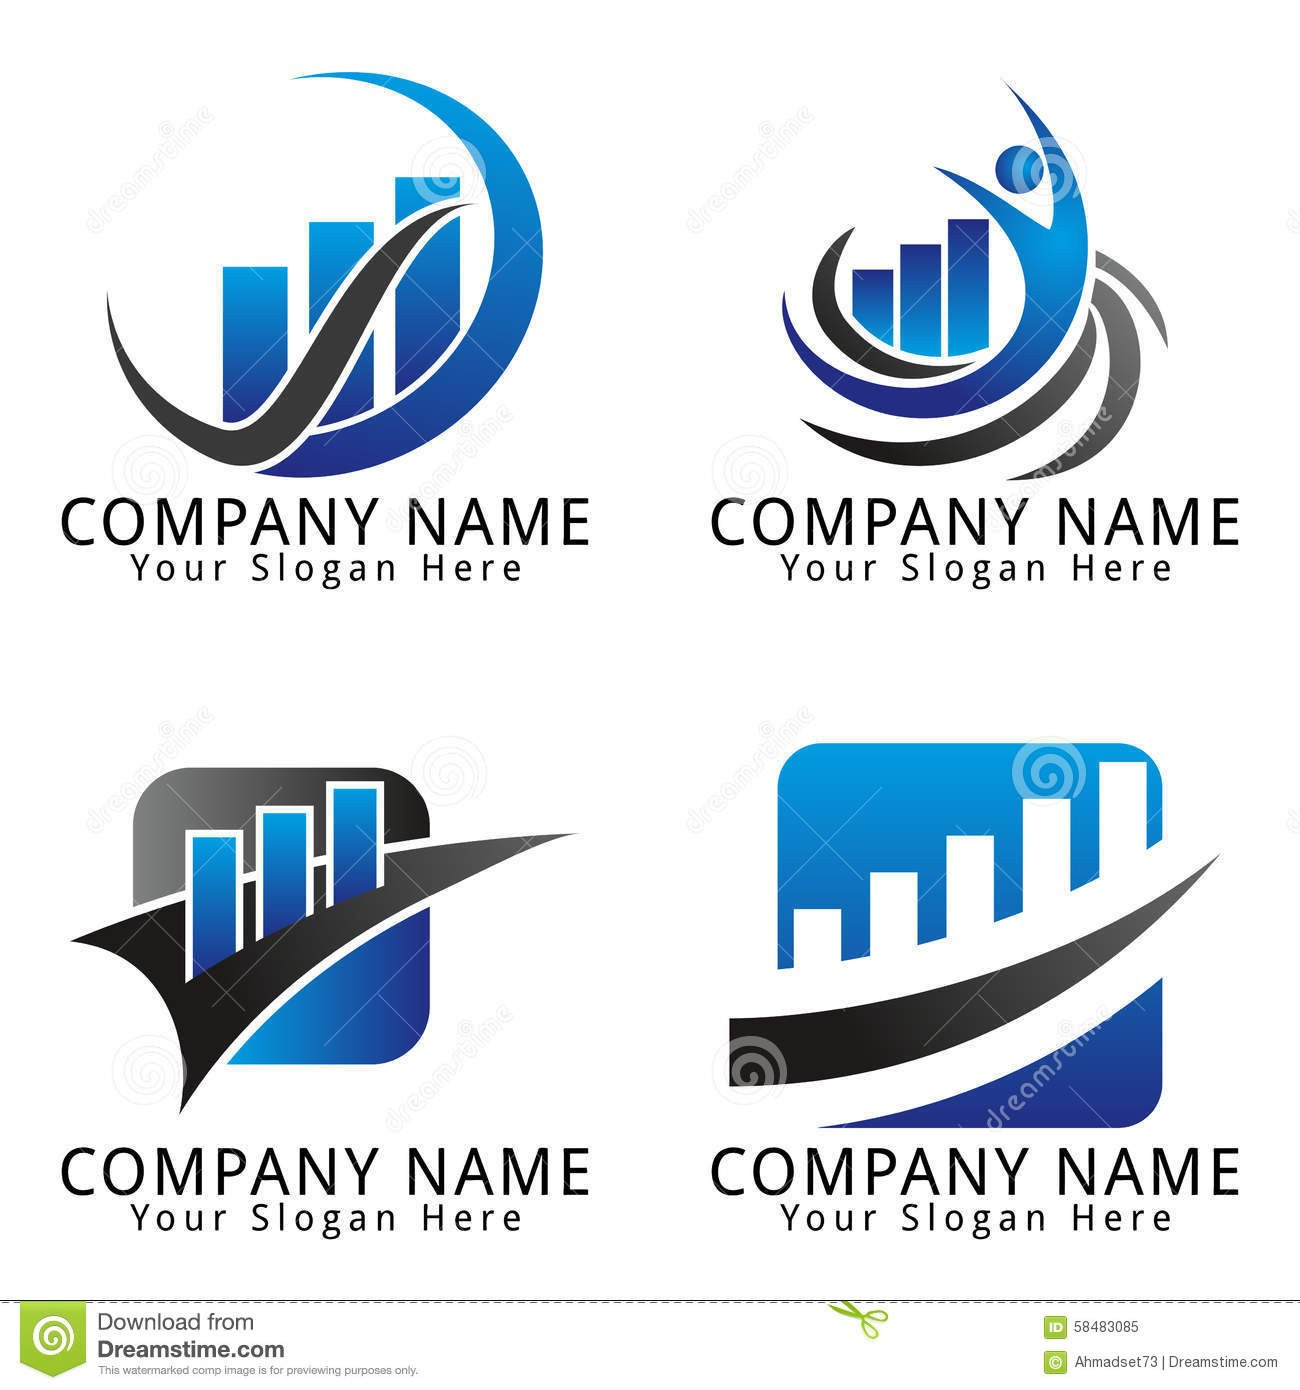 Free Editable Logo Templates Royalty Free Stock Finance and Marketing Concept